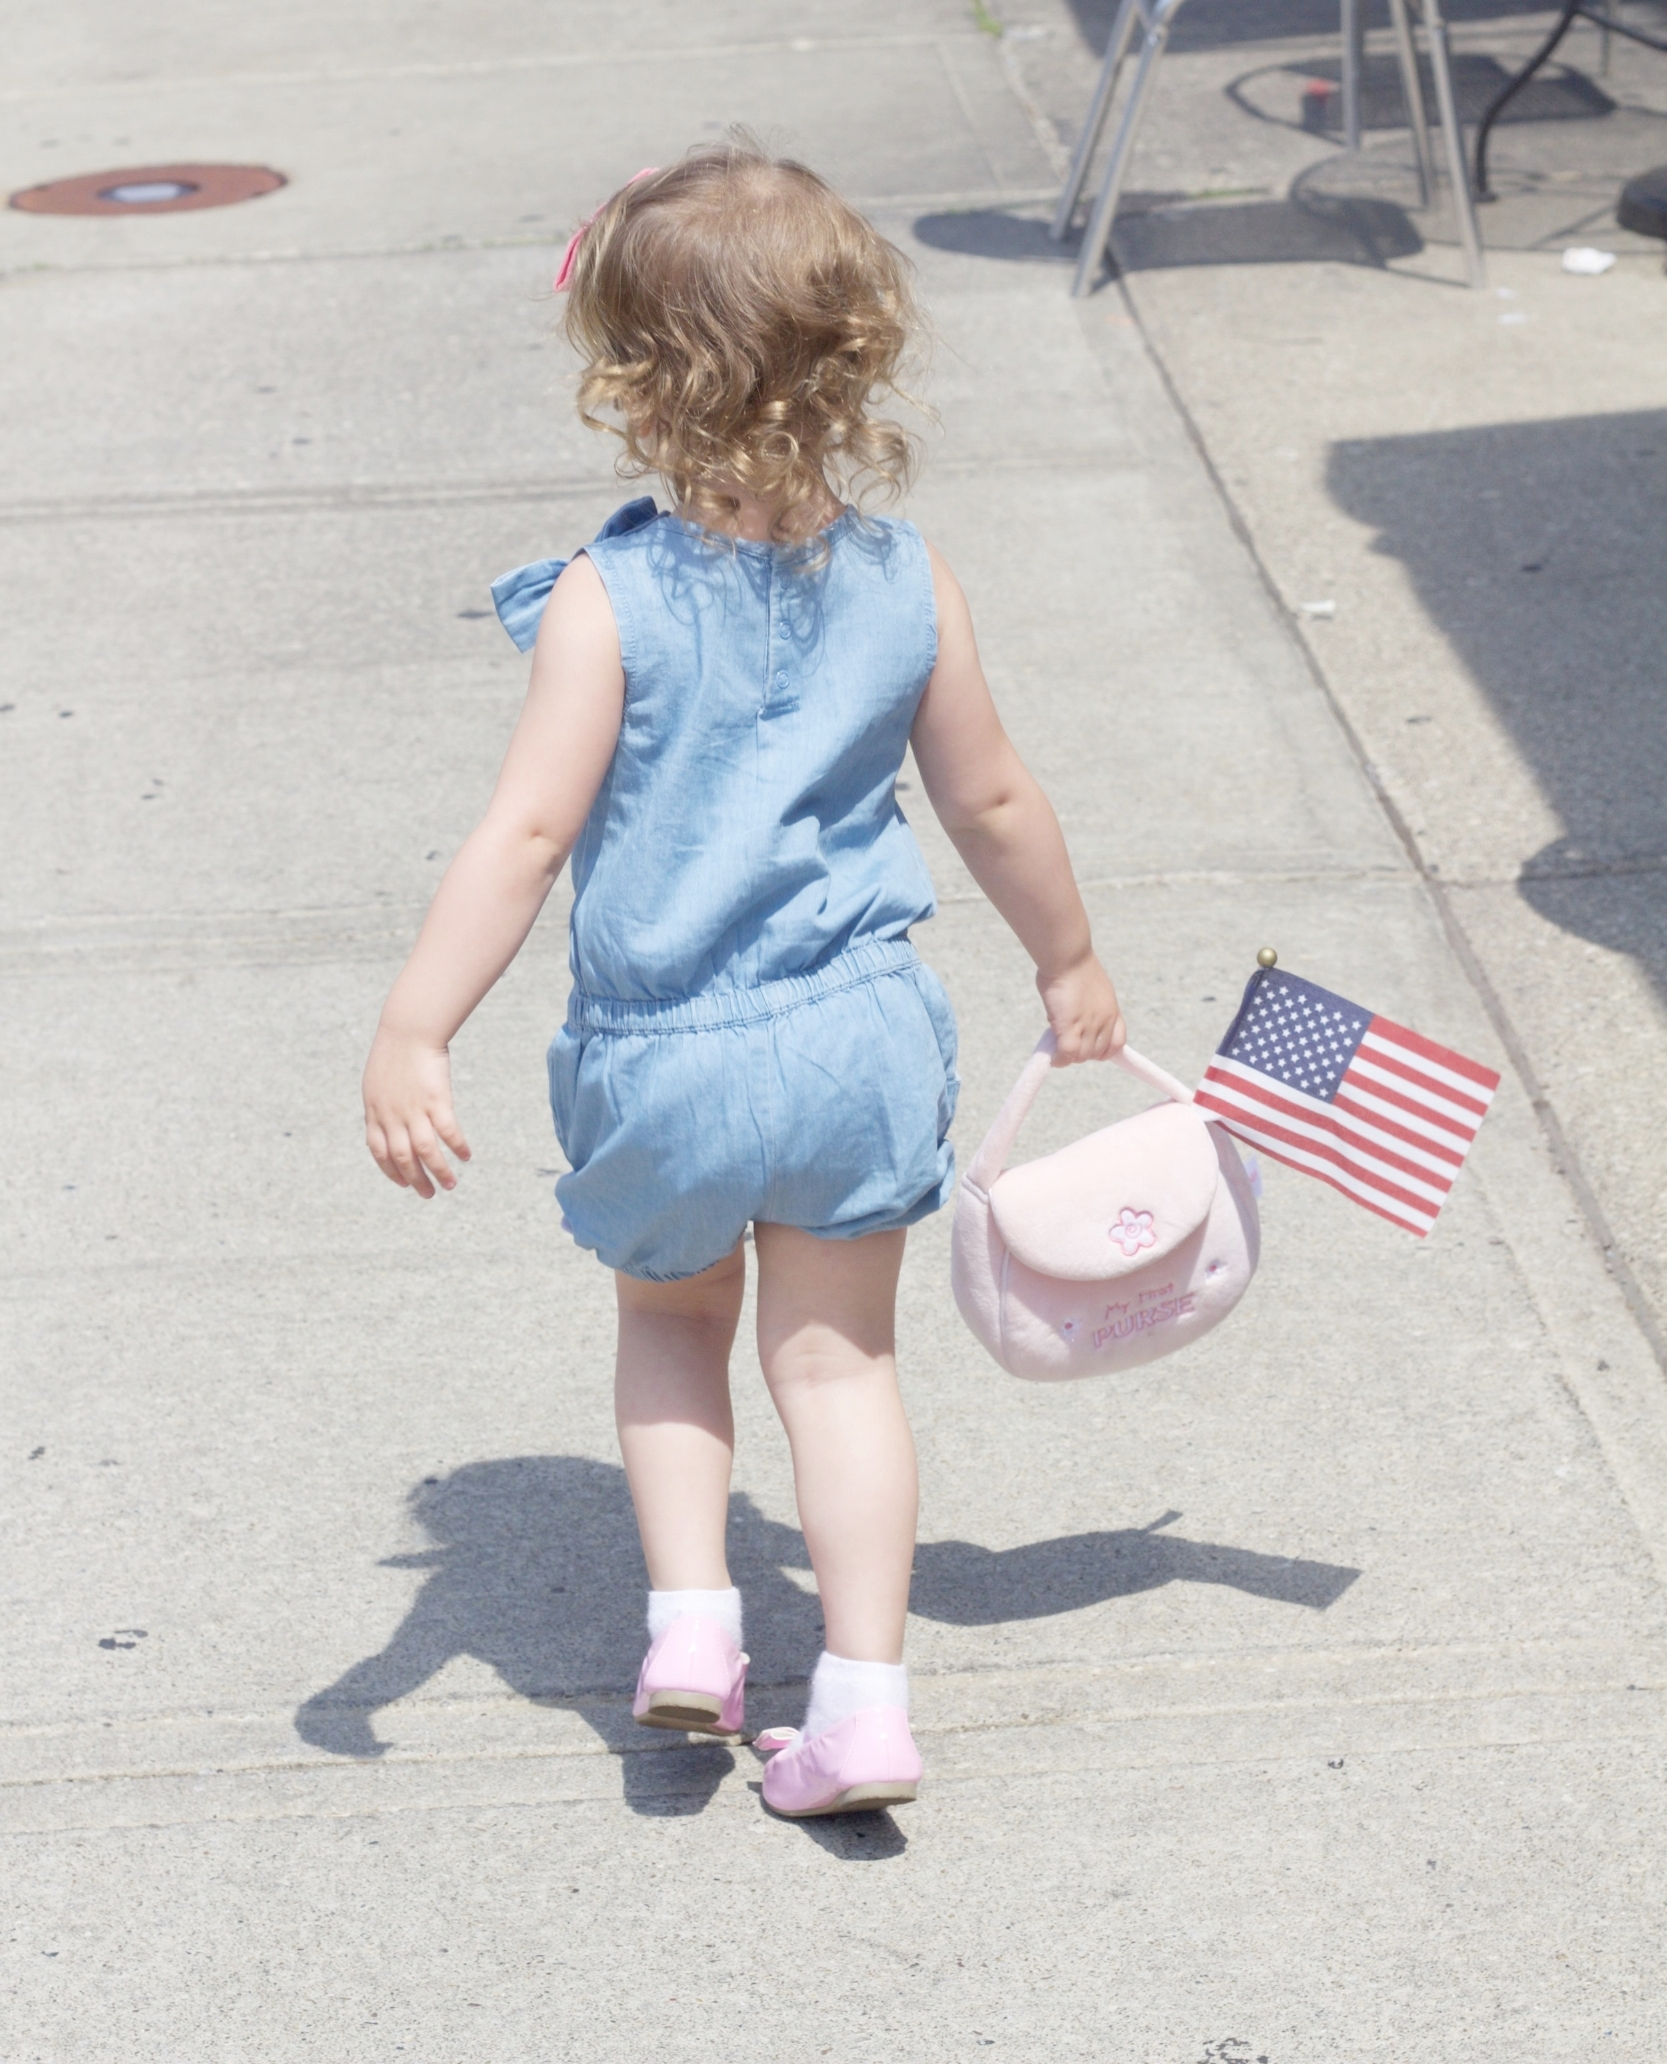 Toddler Style 4th of July, Independence Day 2017 So Dressed Up